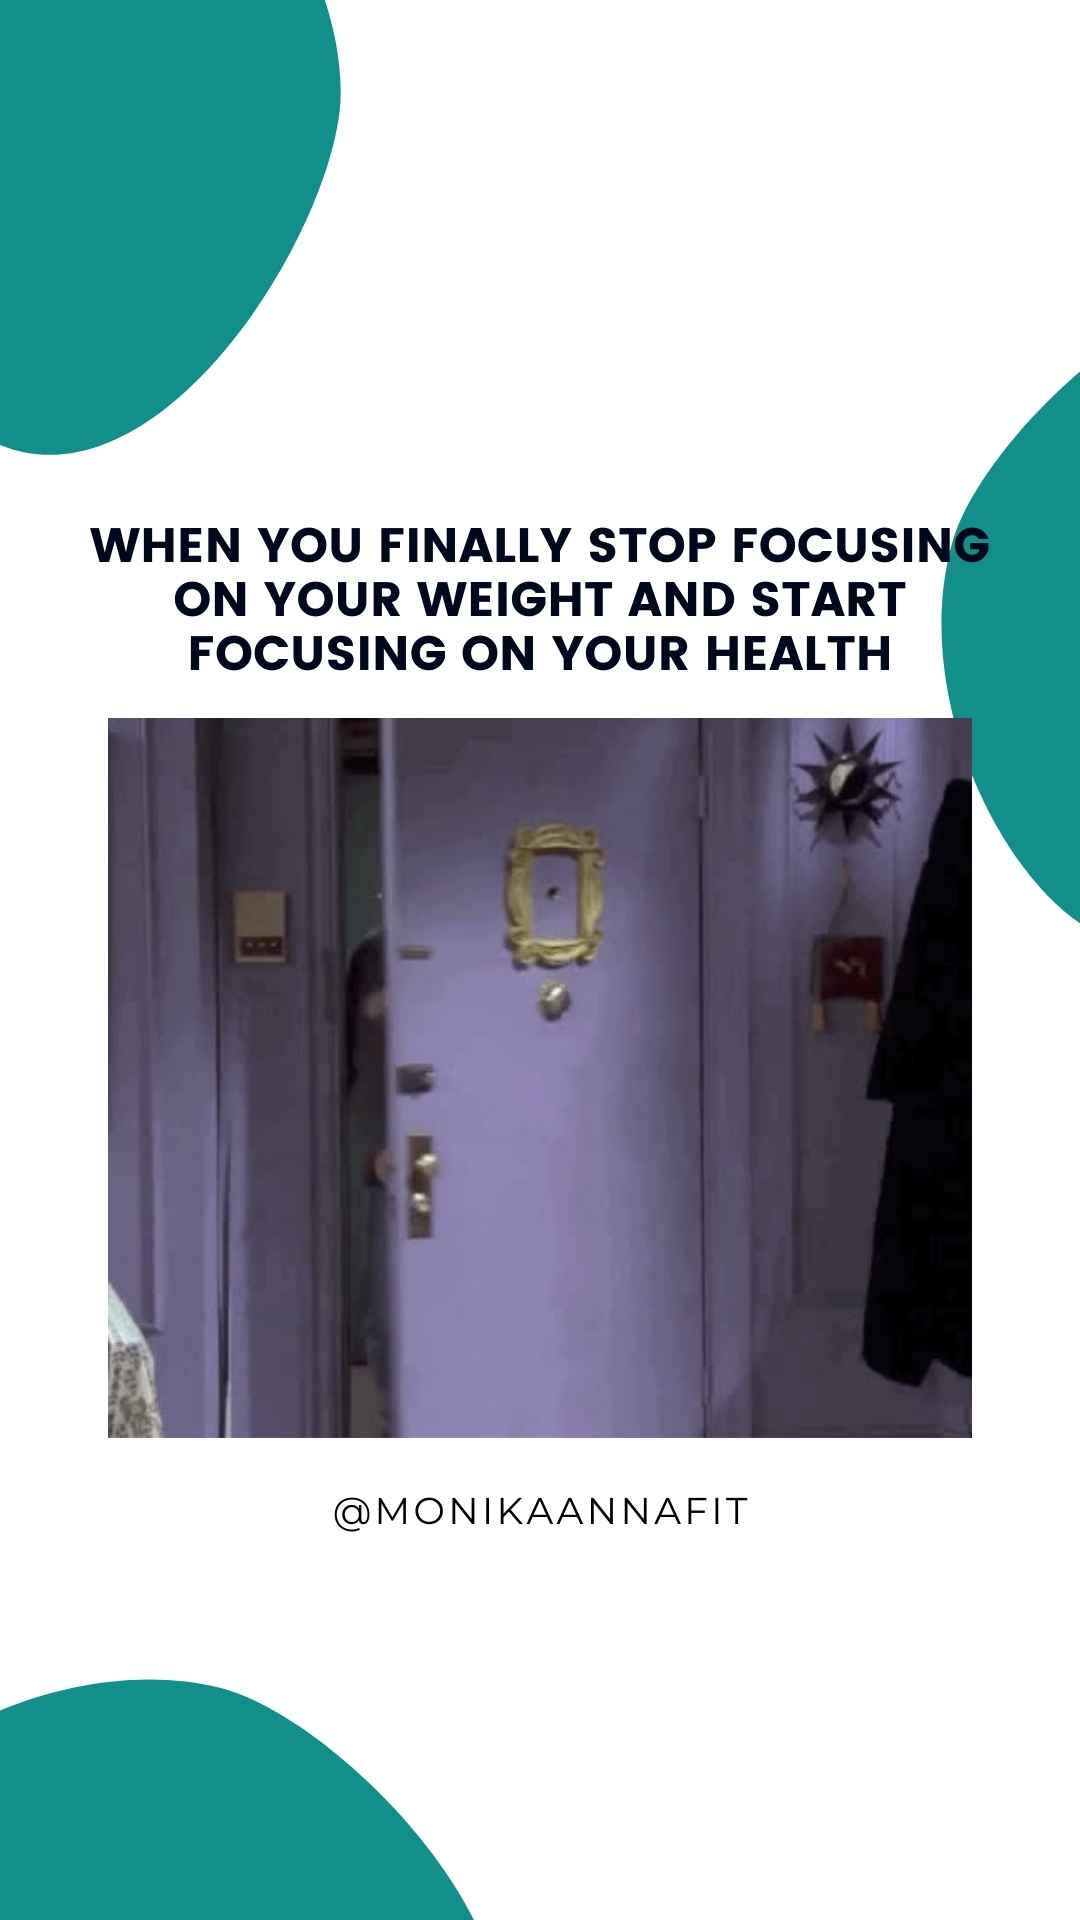 When-you-finally-stop-focusing-on-your-weight monikaannafit